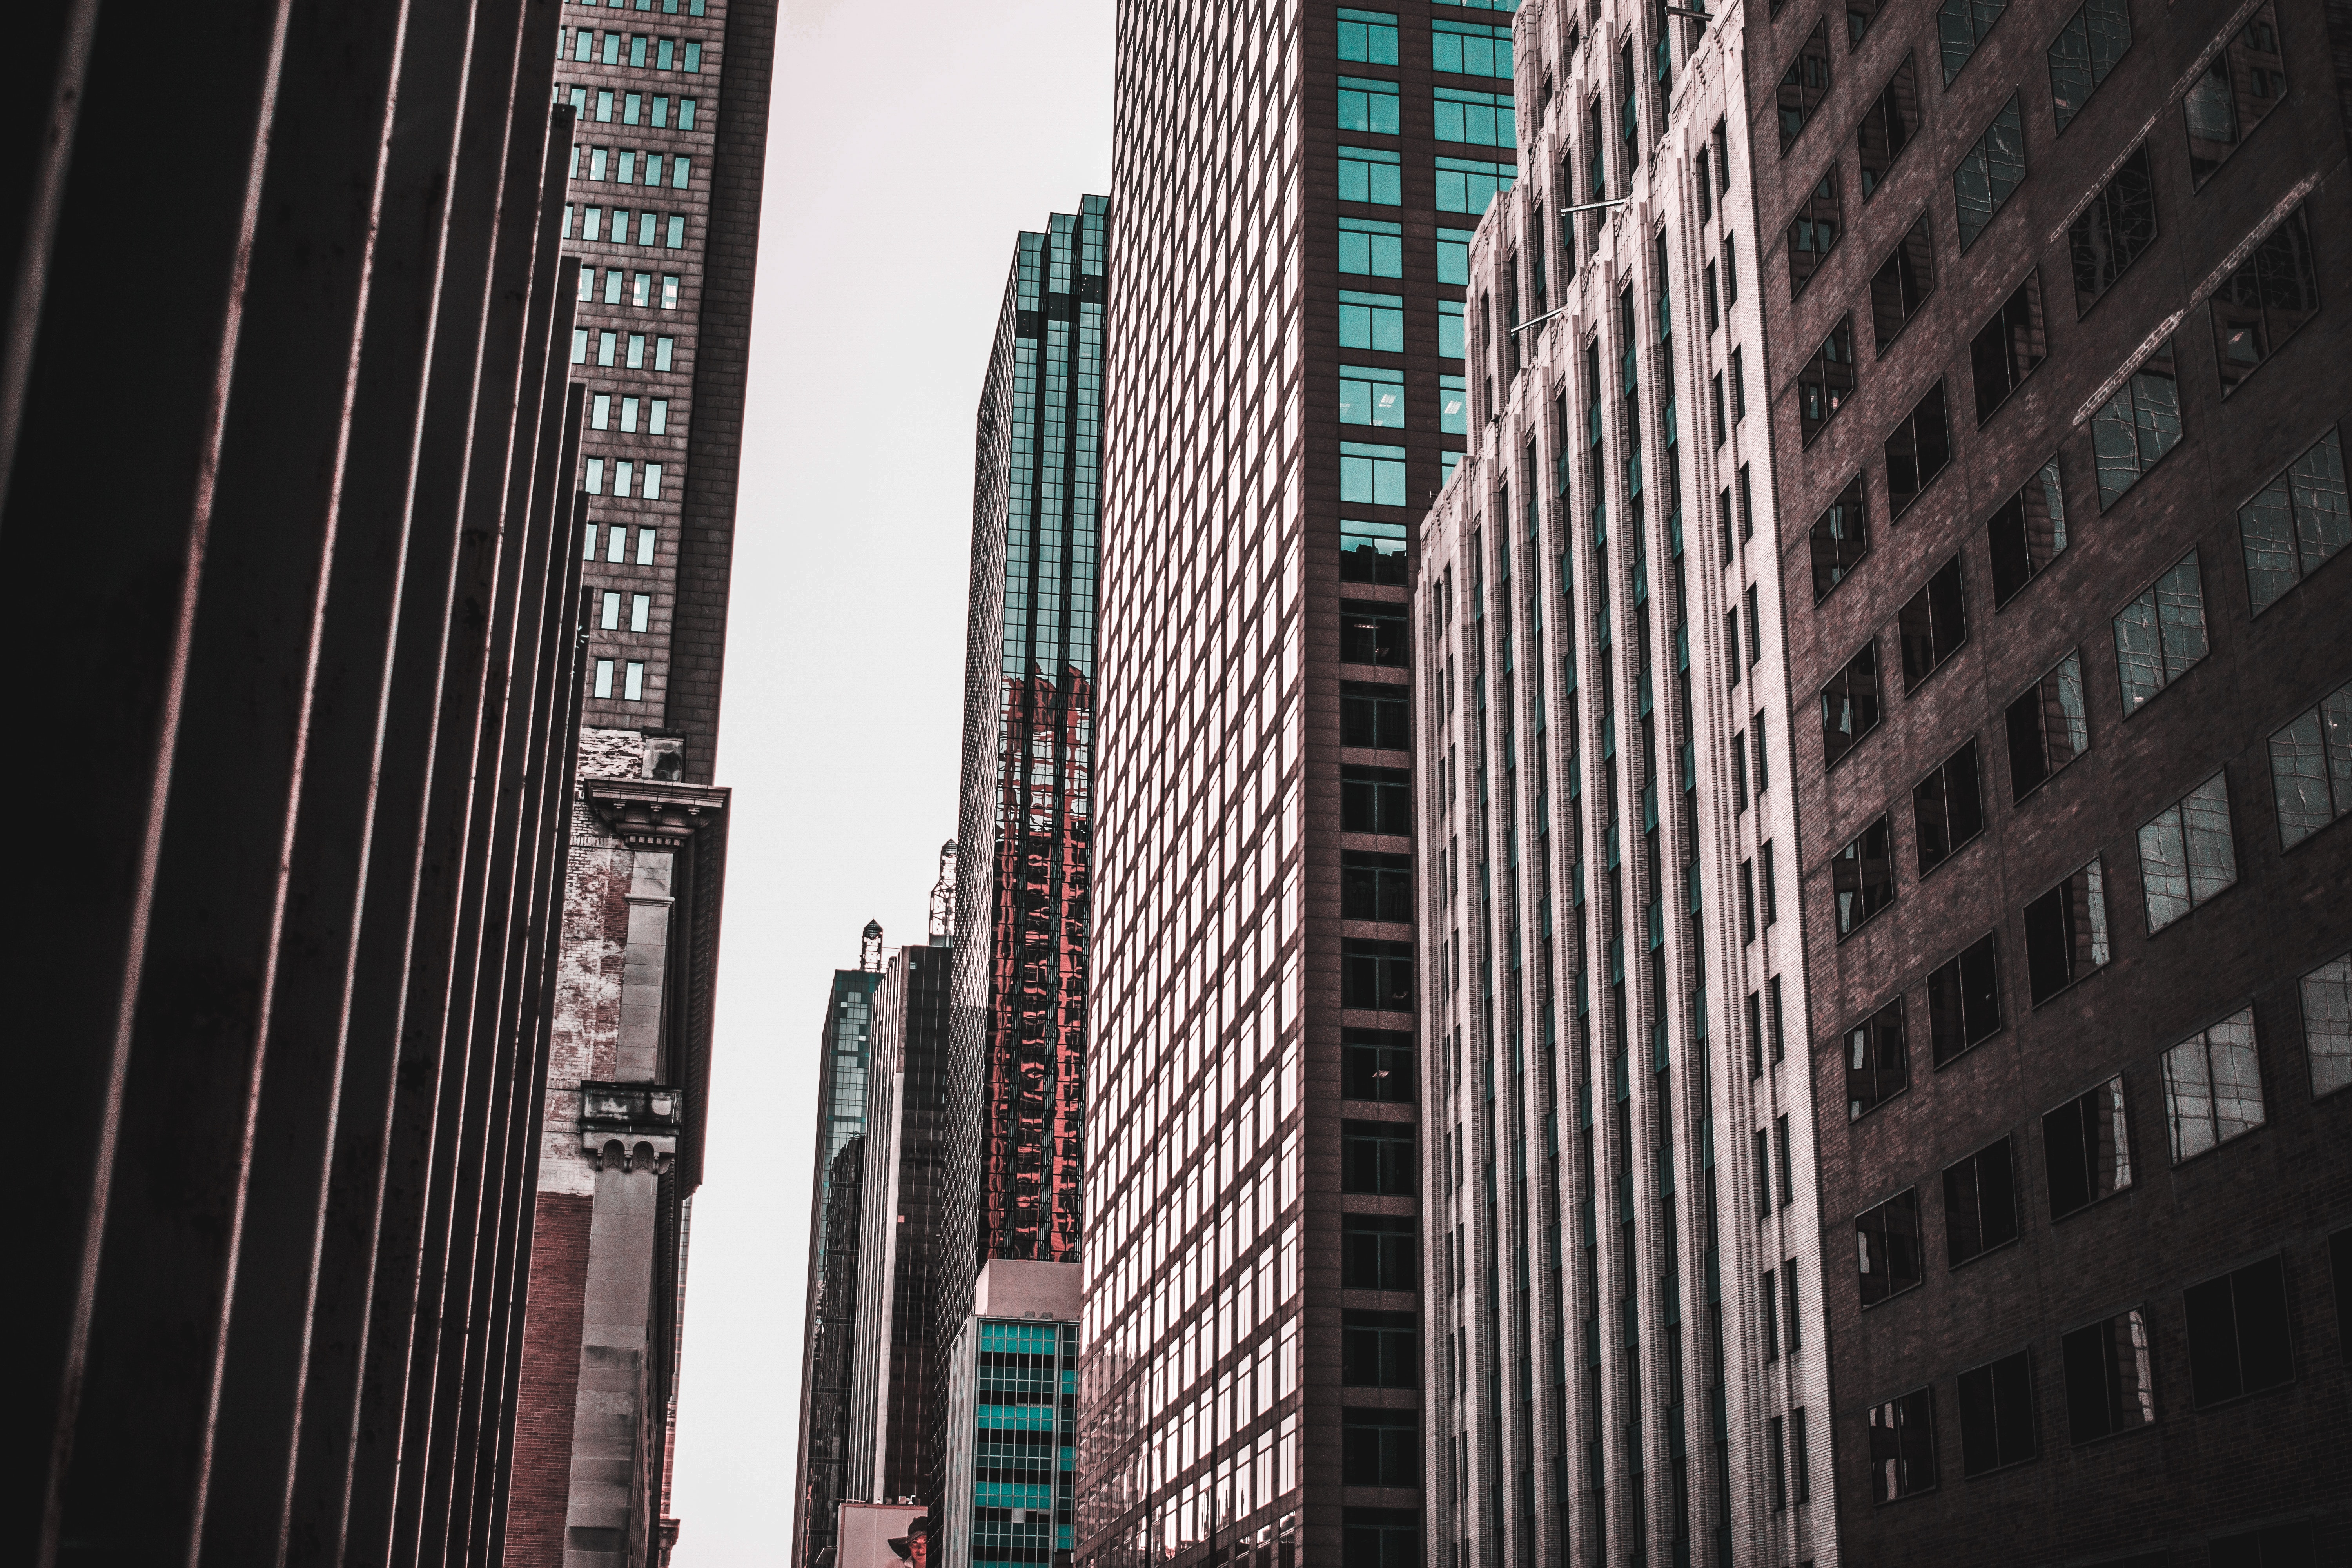 High-rise buildings photo